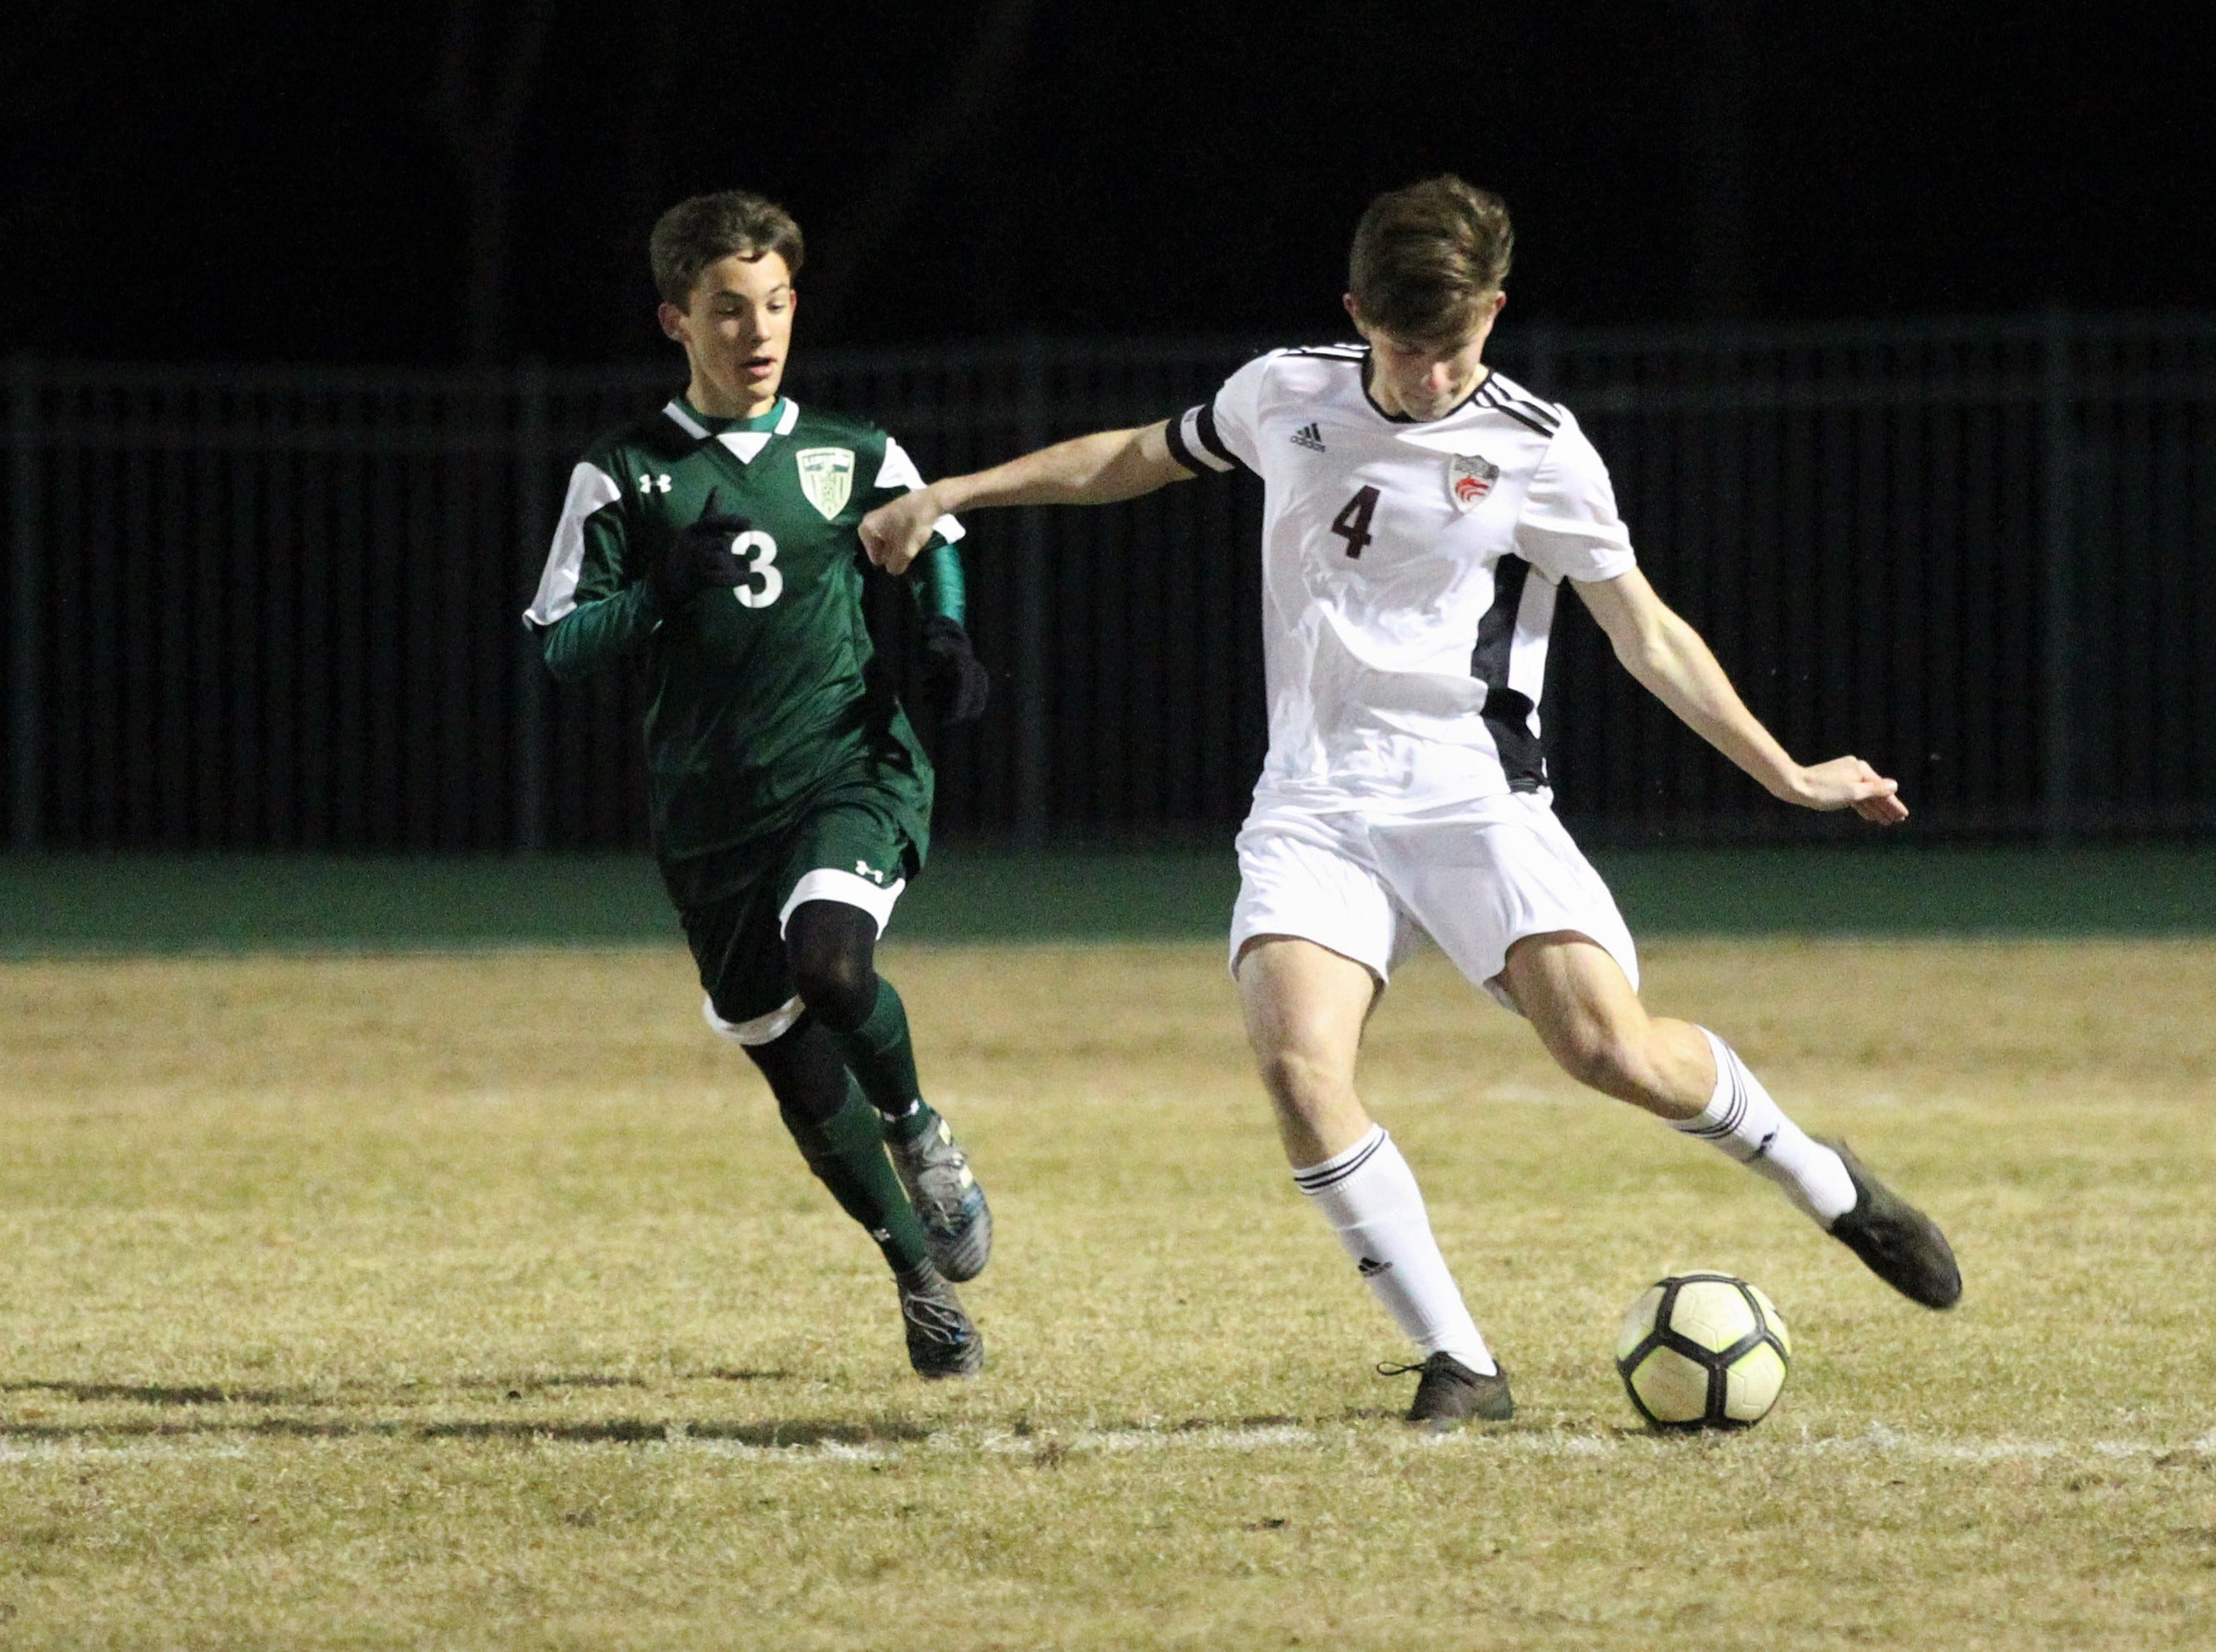 Chiles defender Nate Otis makes a clearance pass as Chiles' boys soccer team beat Lincoln 1-0 in a District 2-4A semifinal on Jan. 30, 2019.